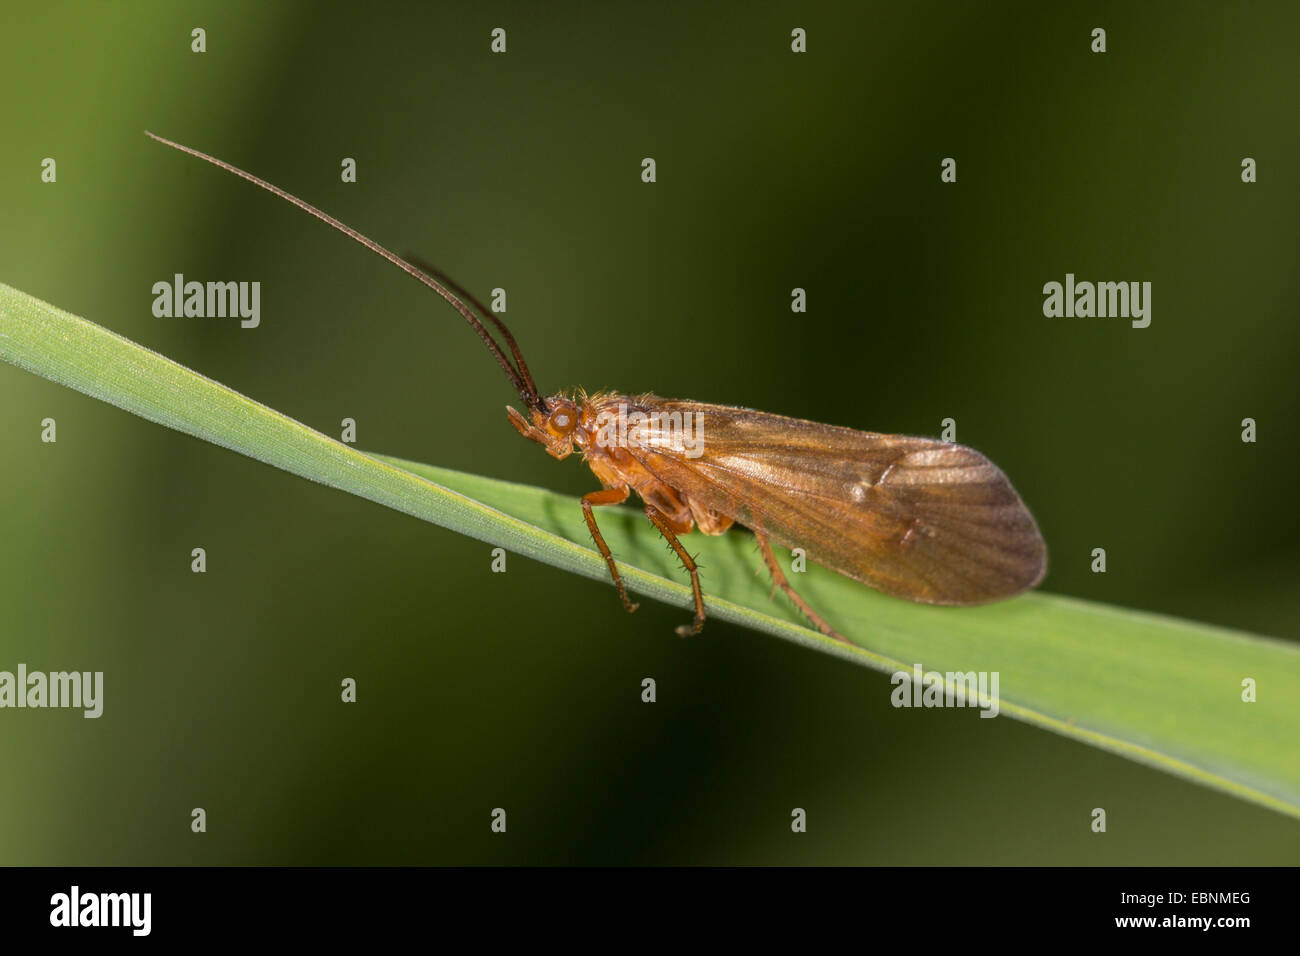 caddis flies (Trichoptera), caddis fly on blade of grass, Germany, Bavaria - Stock Image